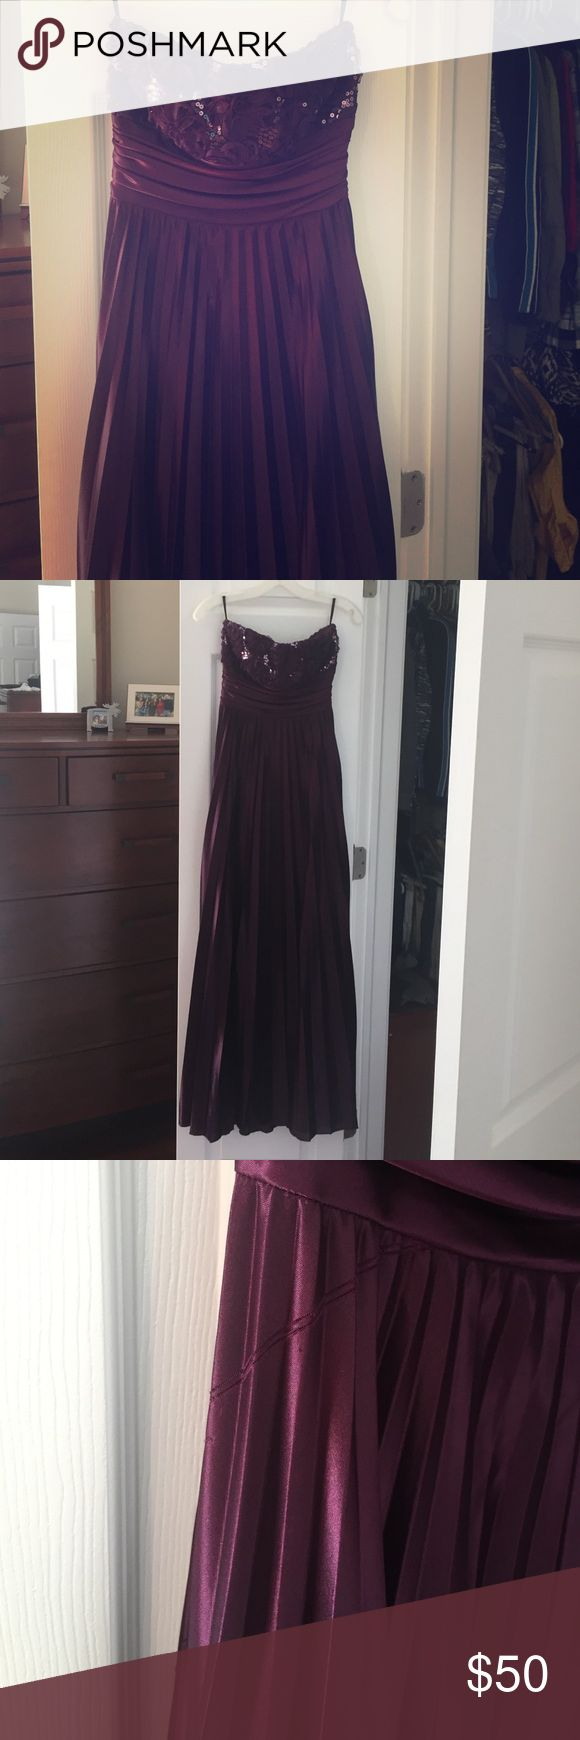 Purple (eggplant) Prom Dress Long strapless prom dress. Worn once. Has a slight snag on the right side but hardly noticeable. I thought it was part of the design. Dresses Prom